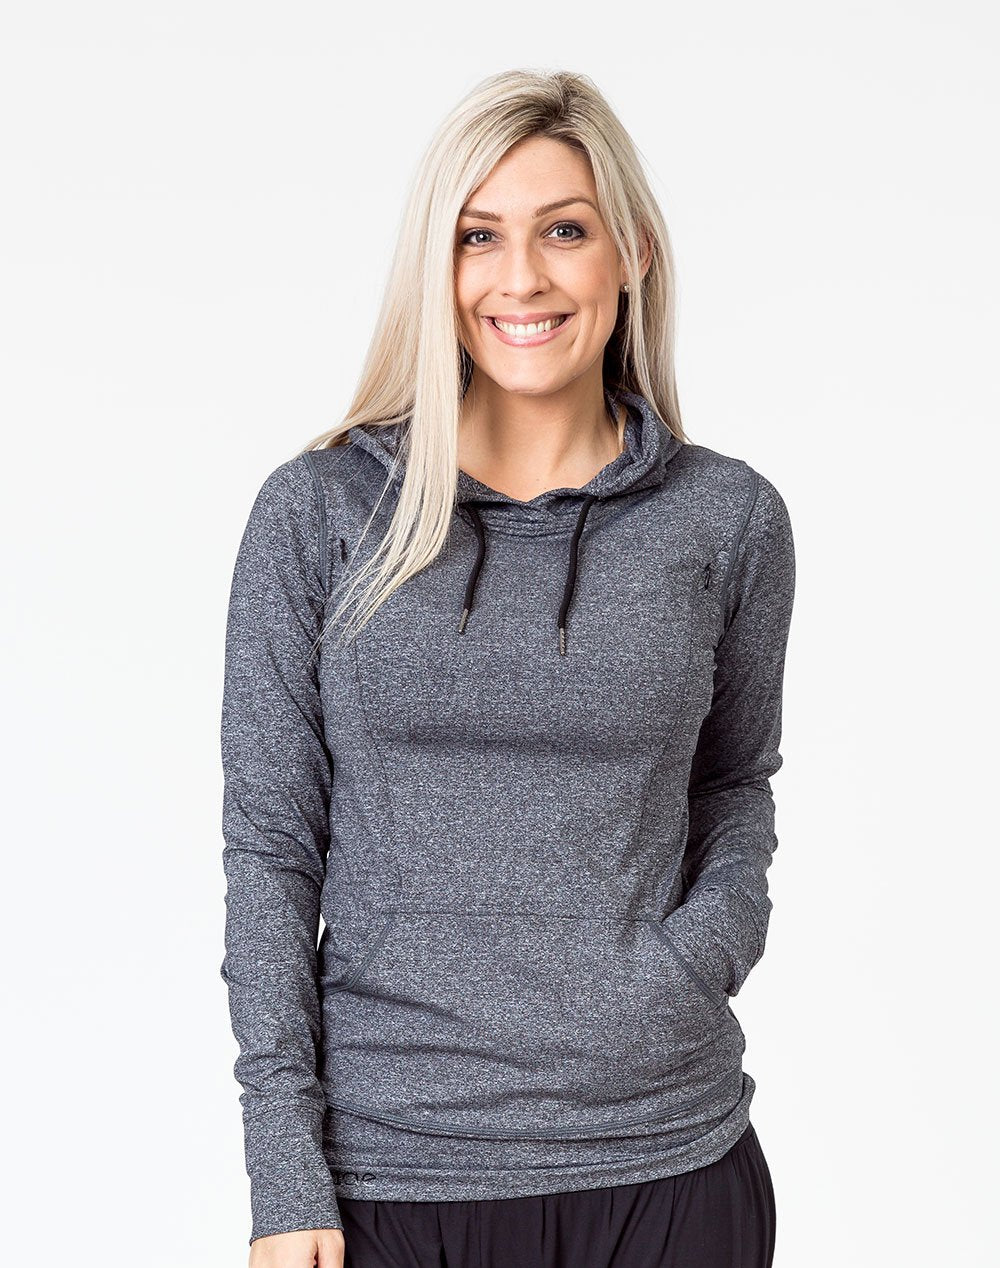 front view of an active mom wearing a gray activewear breastfeeding hoodie